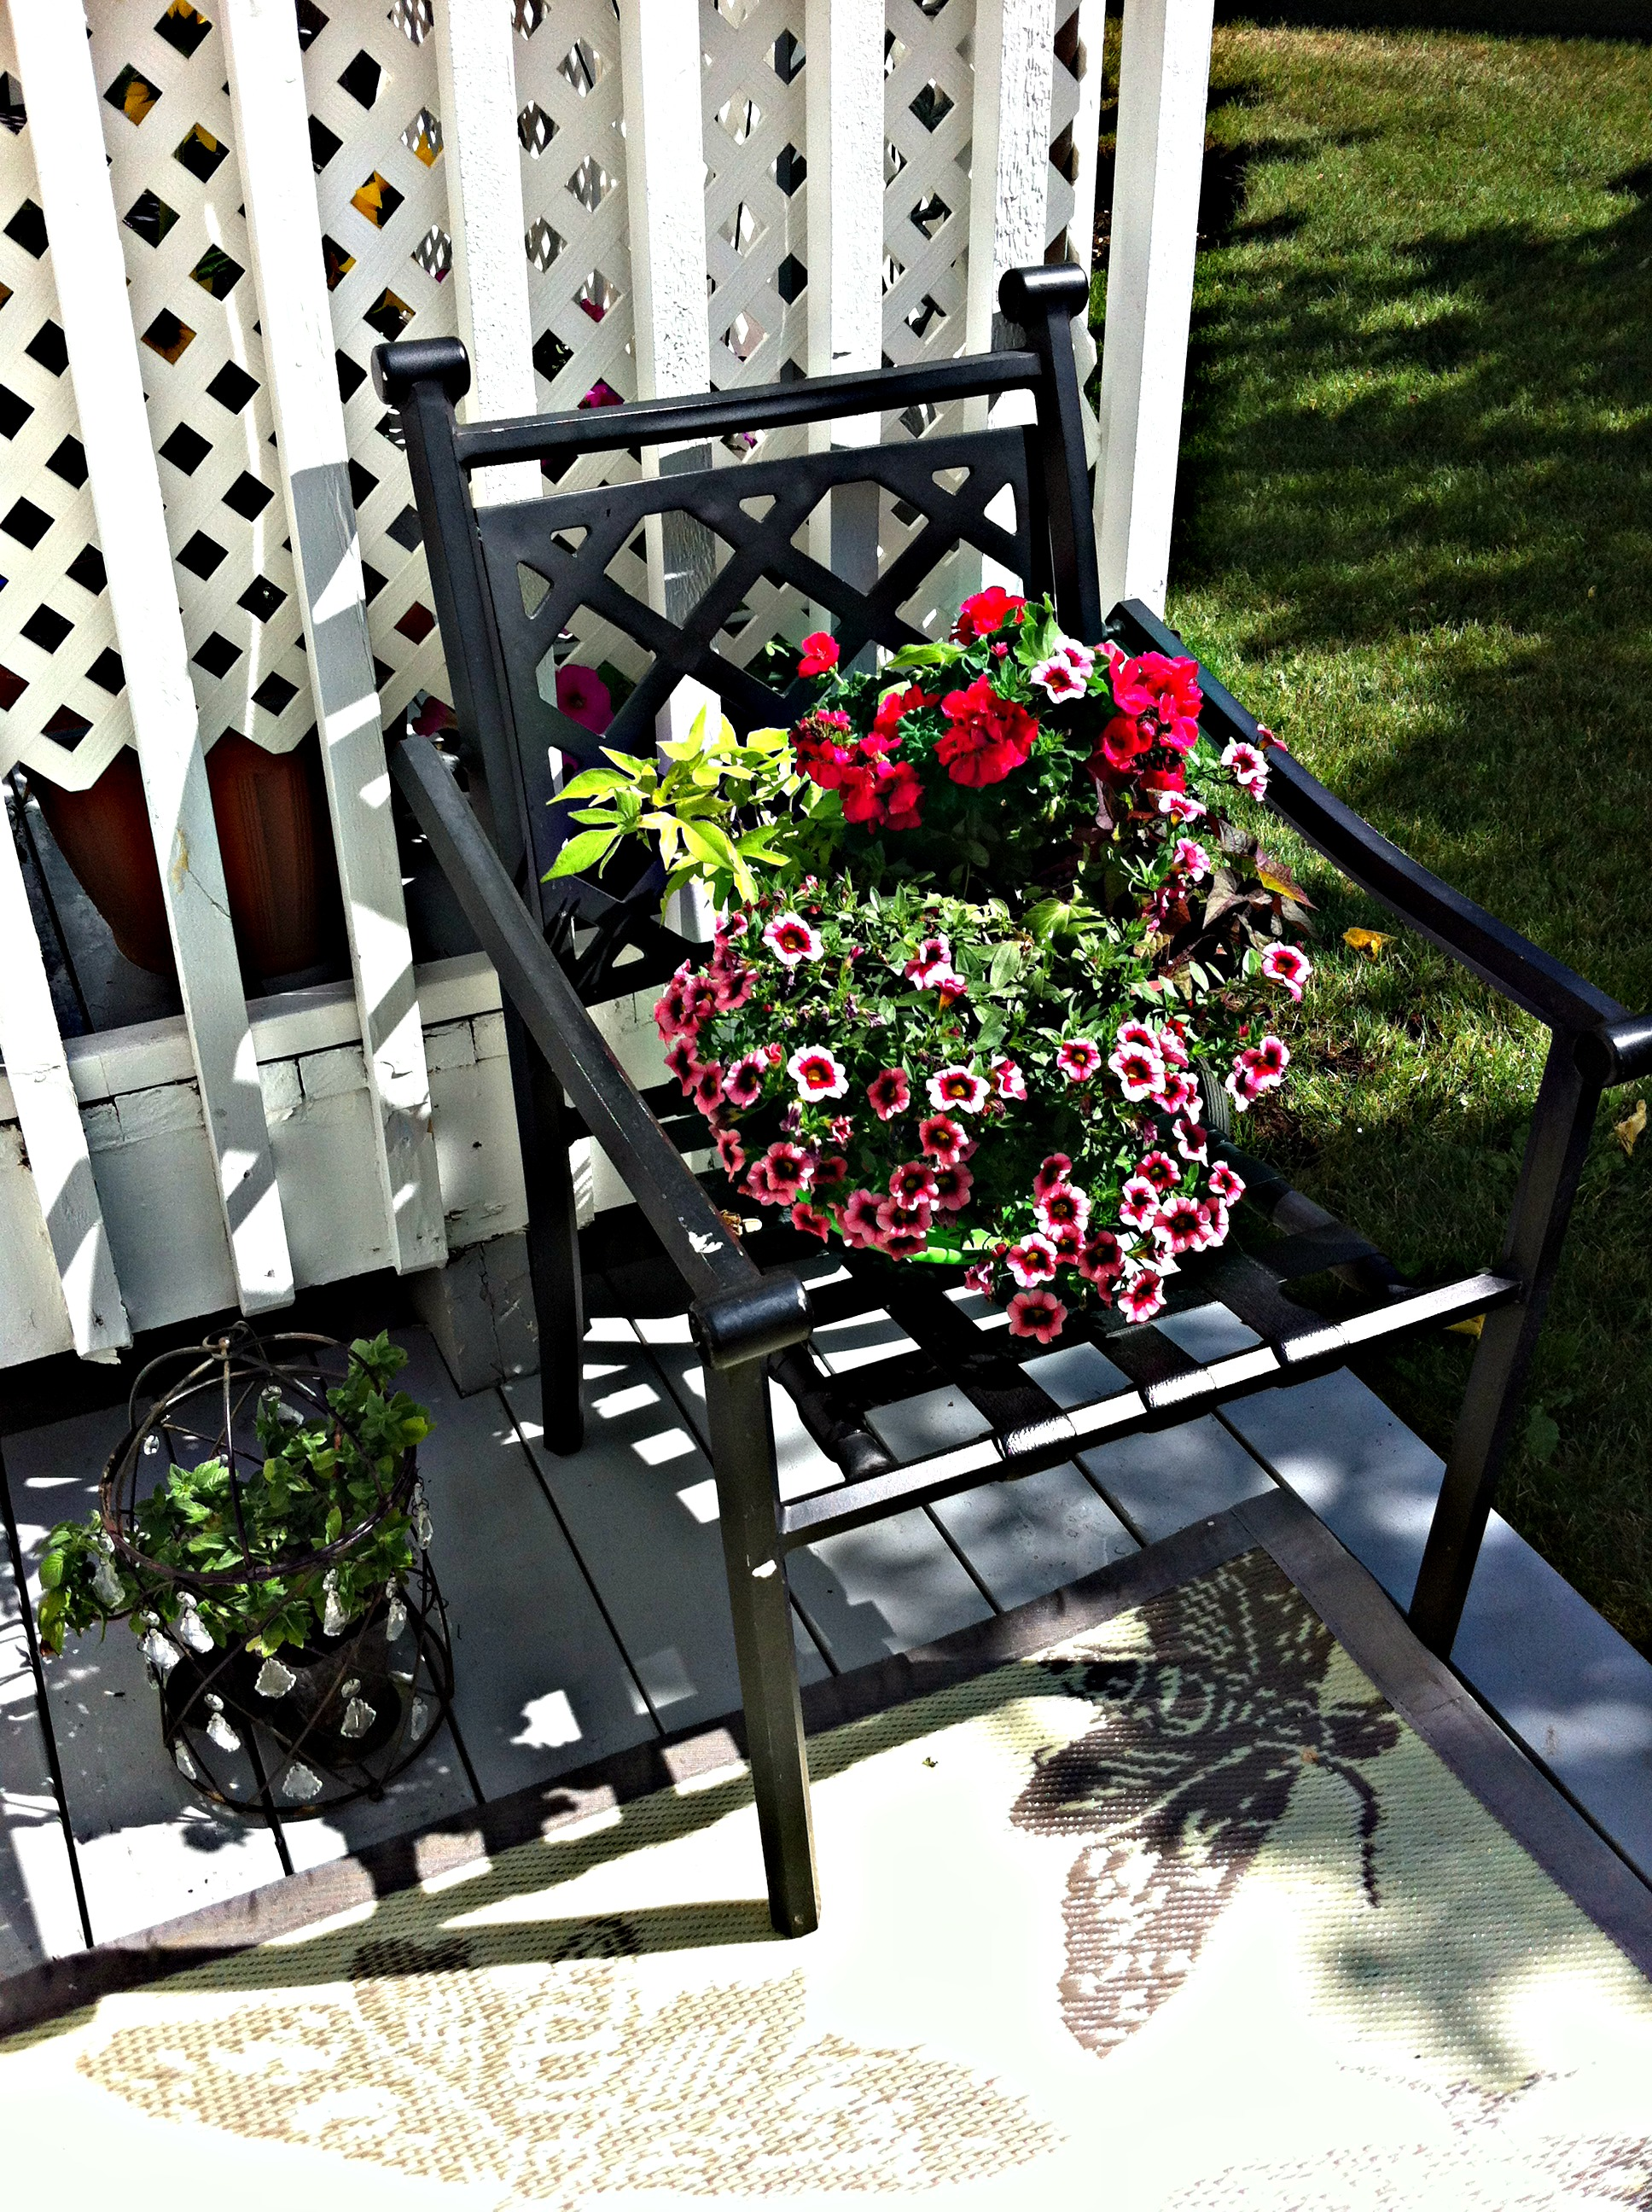 Repurposed Chair Planter 8 DIY Patio Accents #trashtotreasure #patio #diy #yard #garden #up-cycle #re-purpose #patio_table #plant_stand #bird_bath #herb_garden